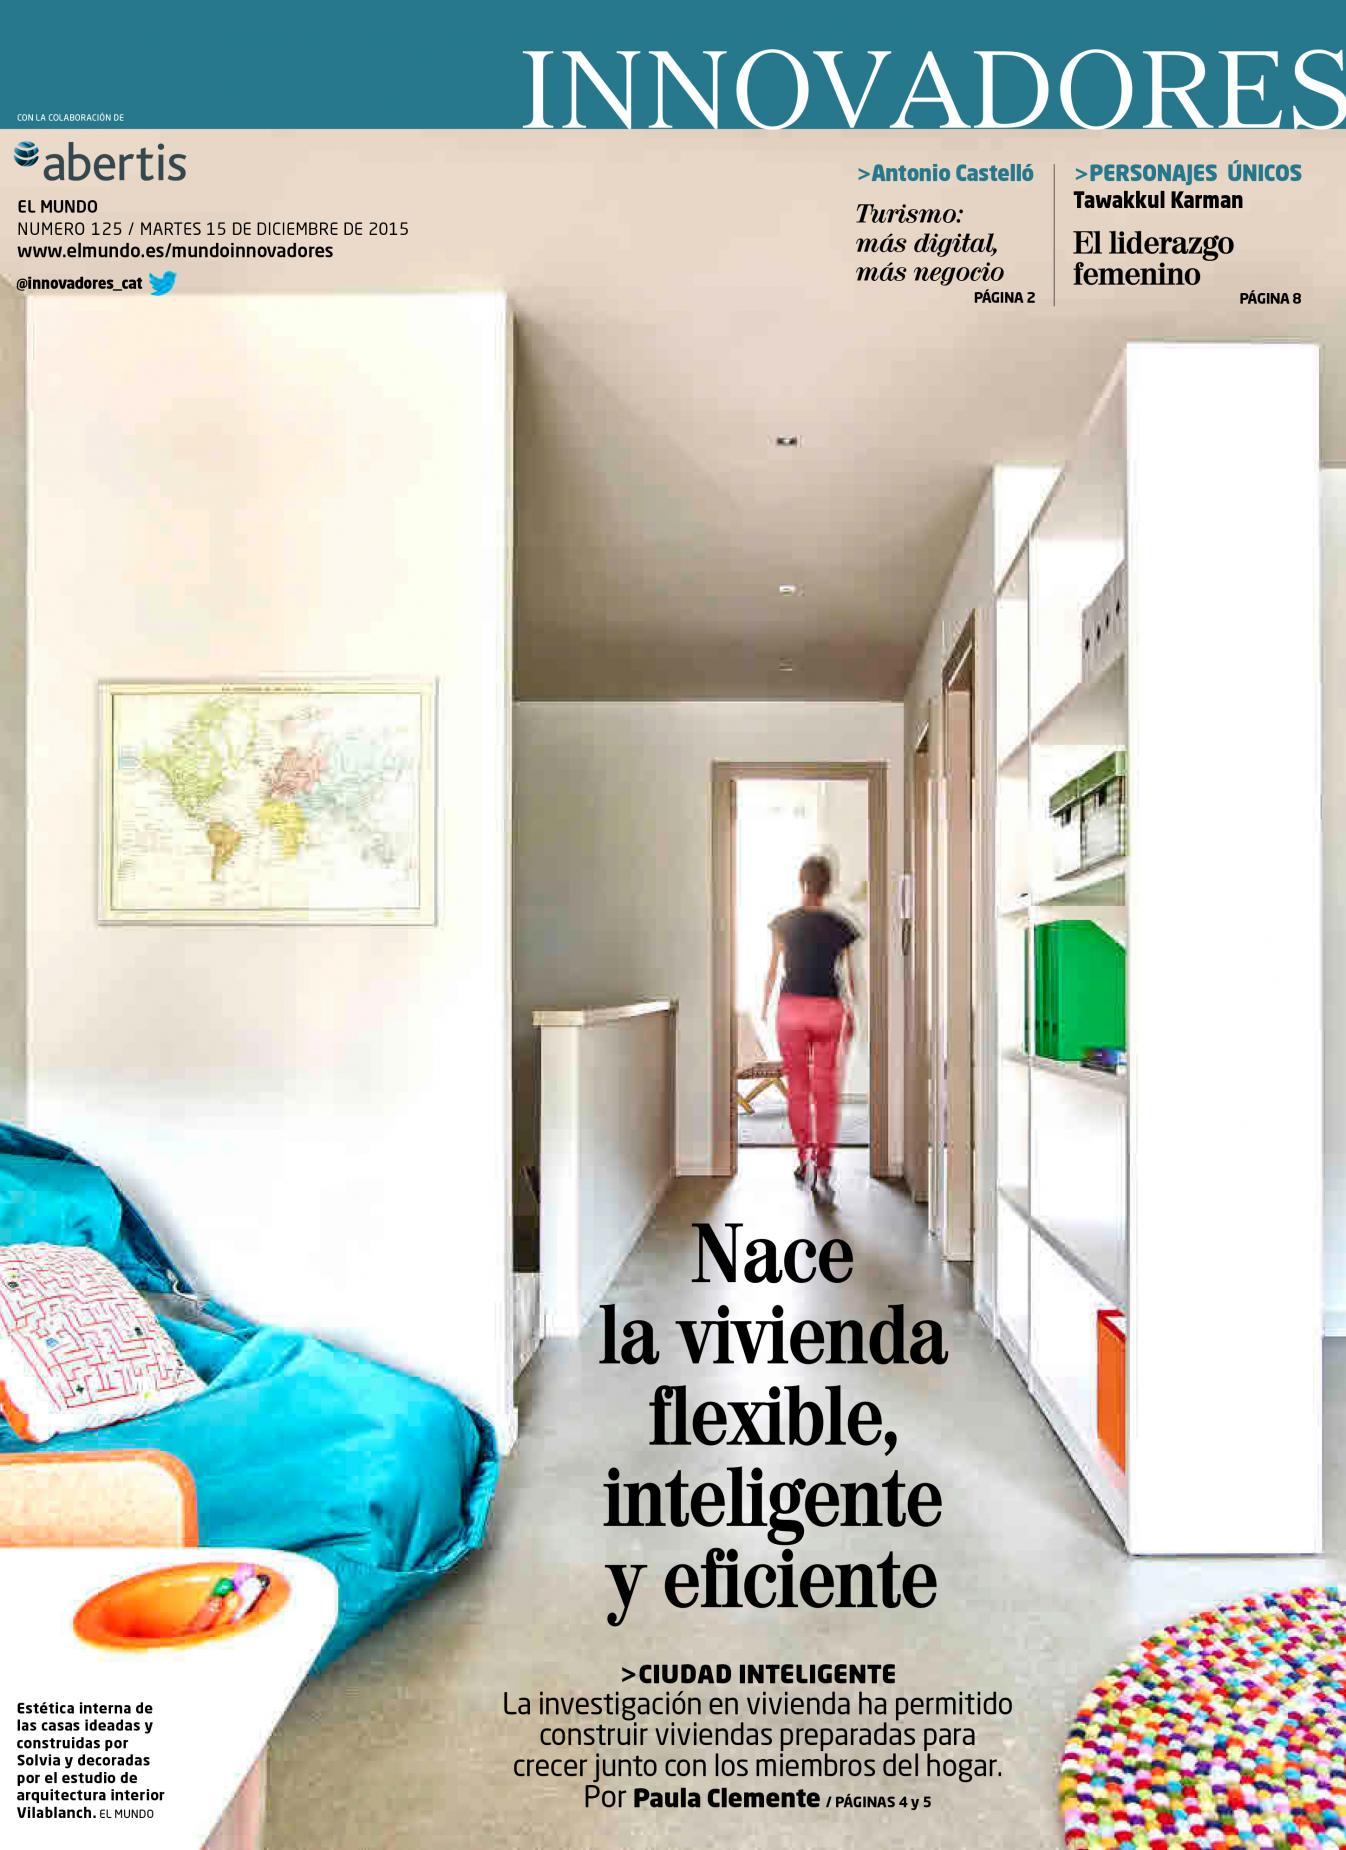 studio vilablanch interior design project Solvia Llavaneras El Mundo